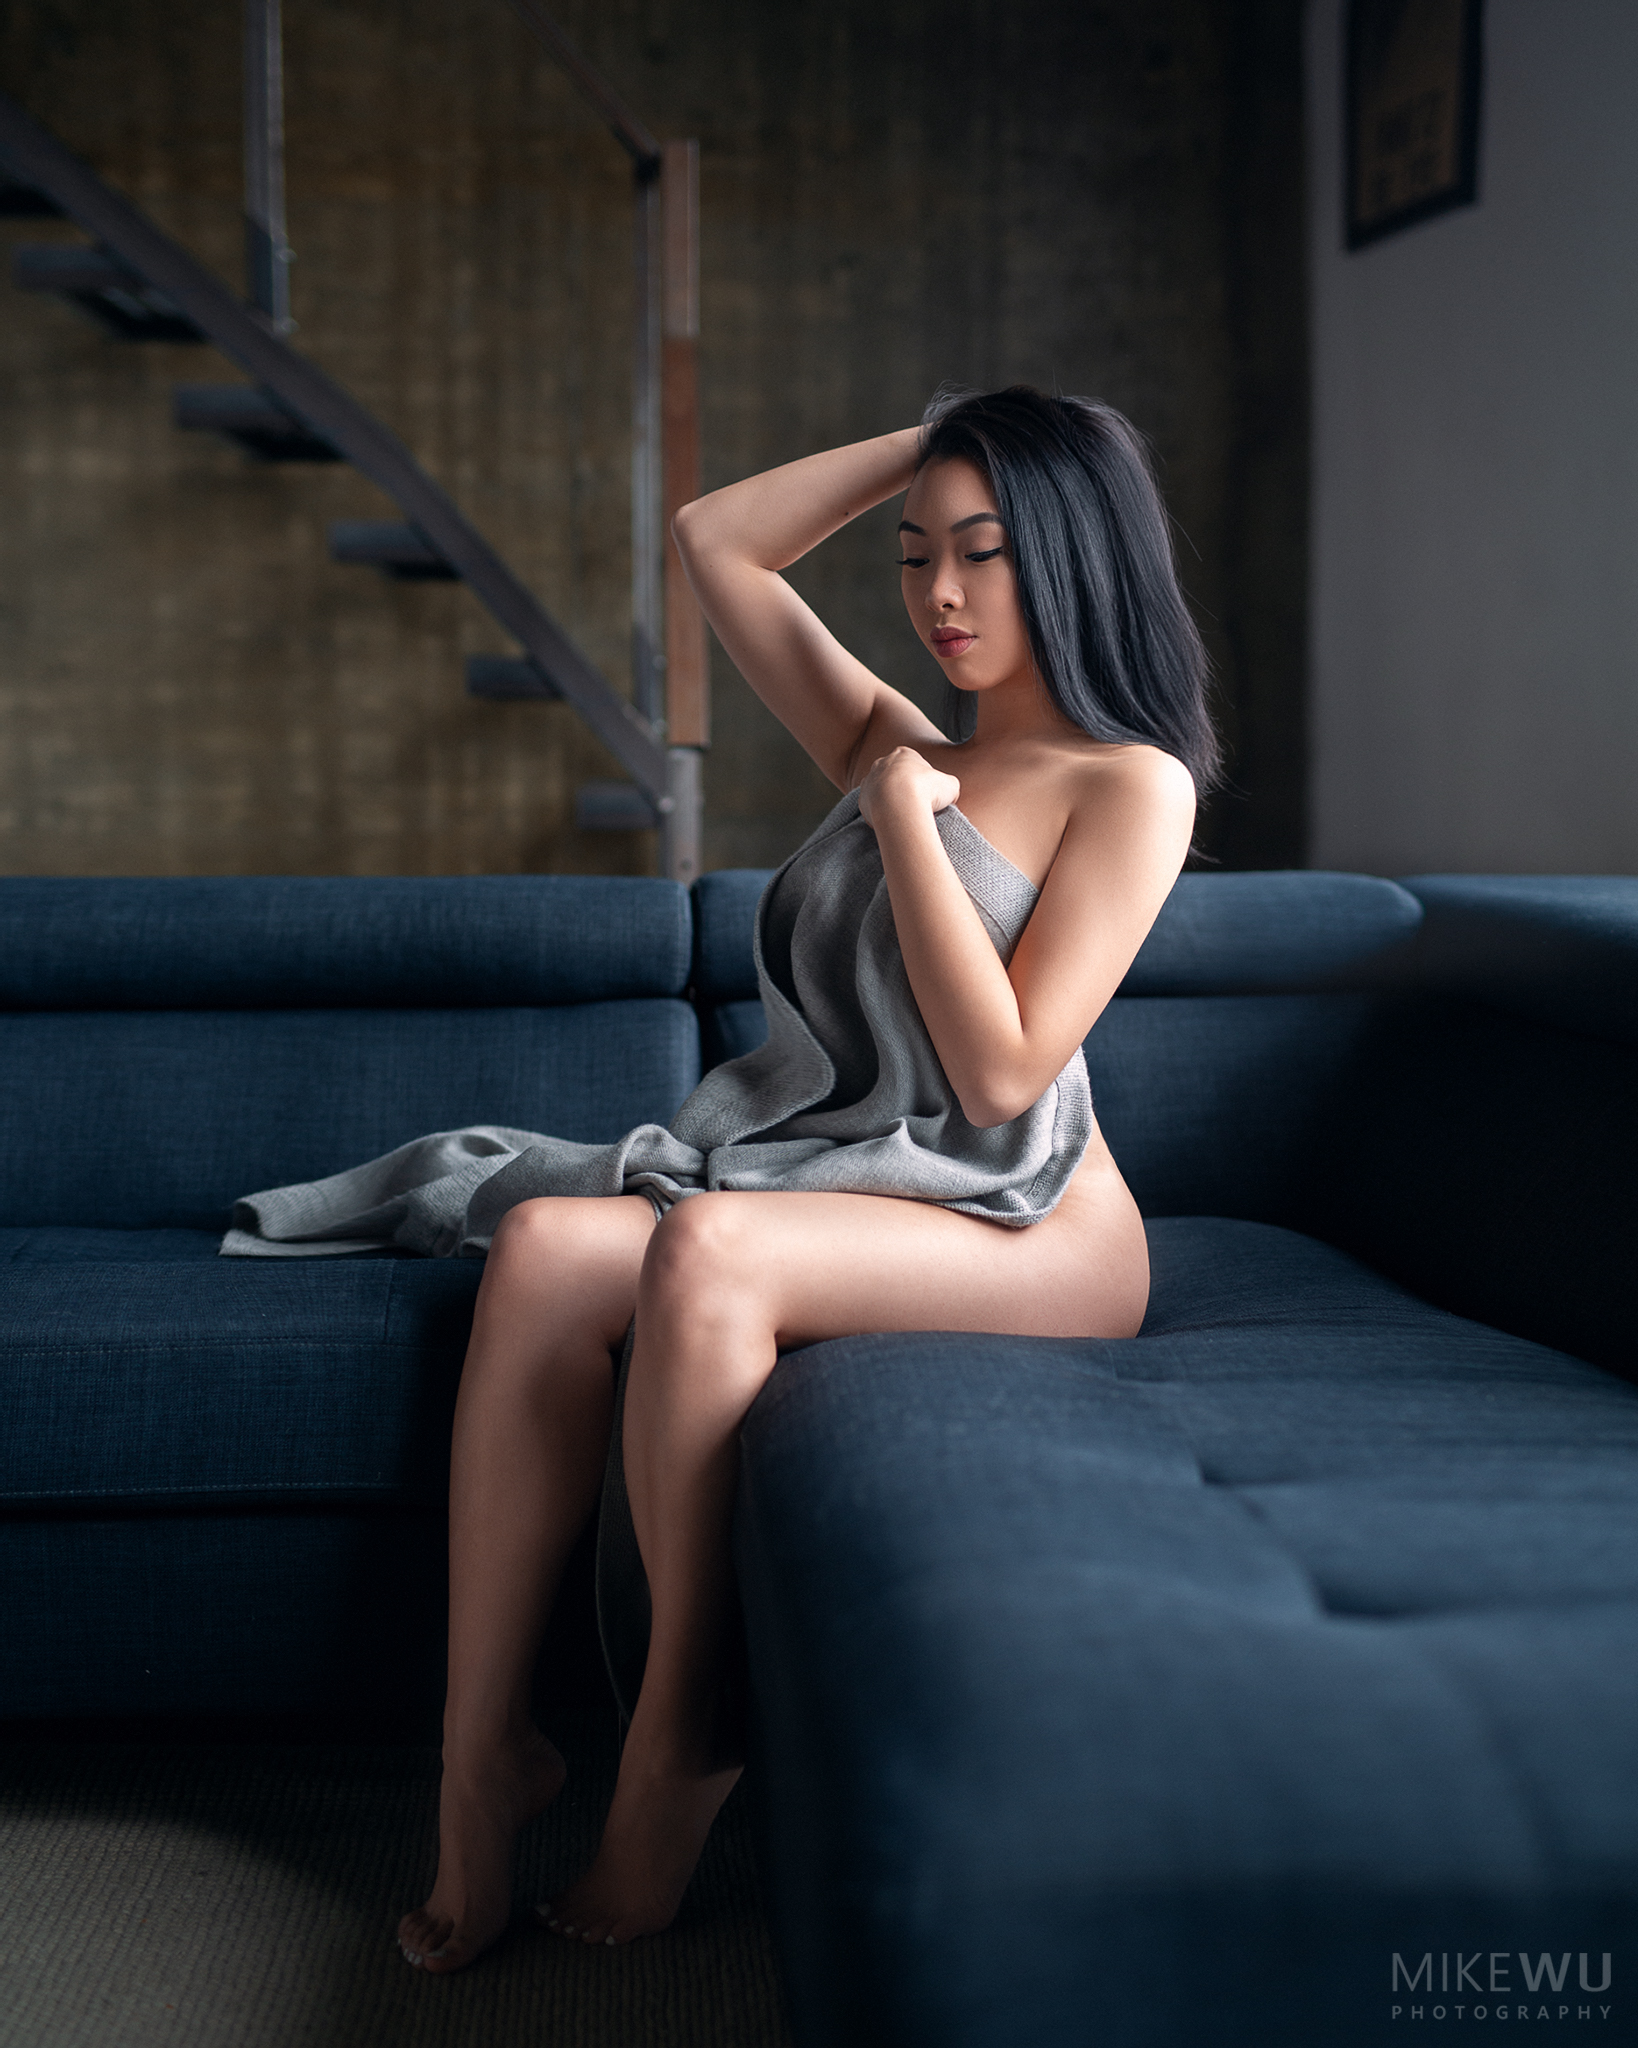 vancouver portrait photographer mike wu, alluring sitting couch indoor studio photography natural 3d beautiful sexy implied asian chinese grey blanket cozy winter mood